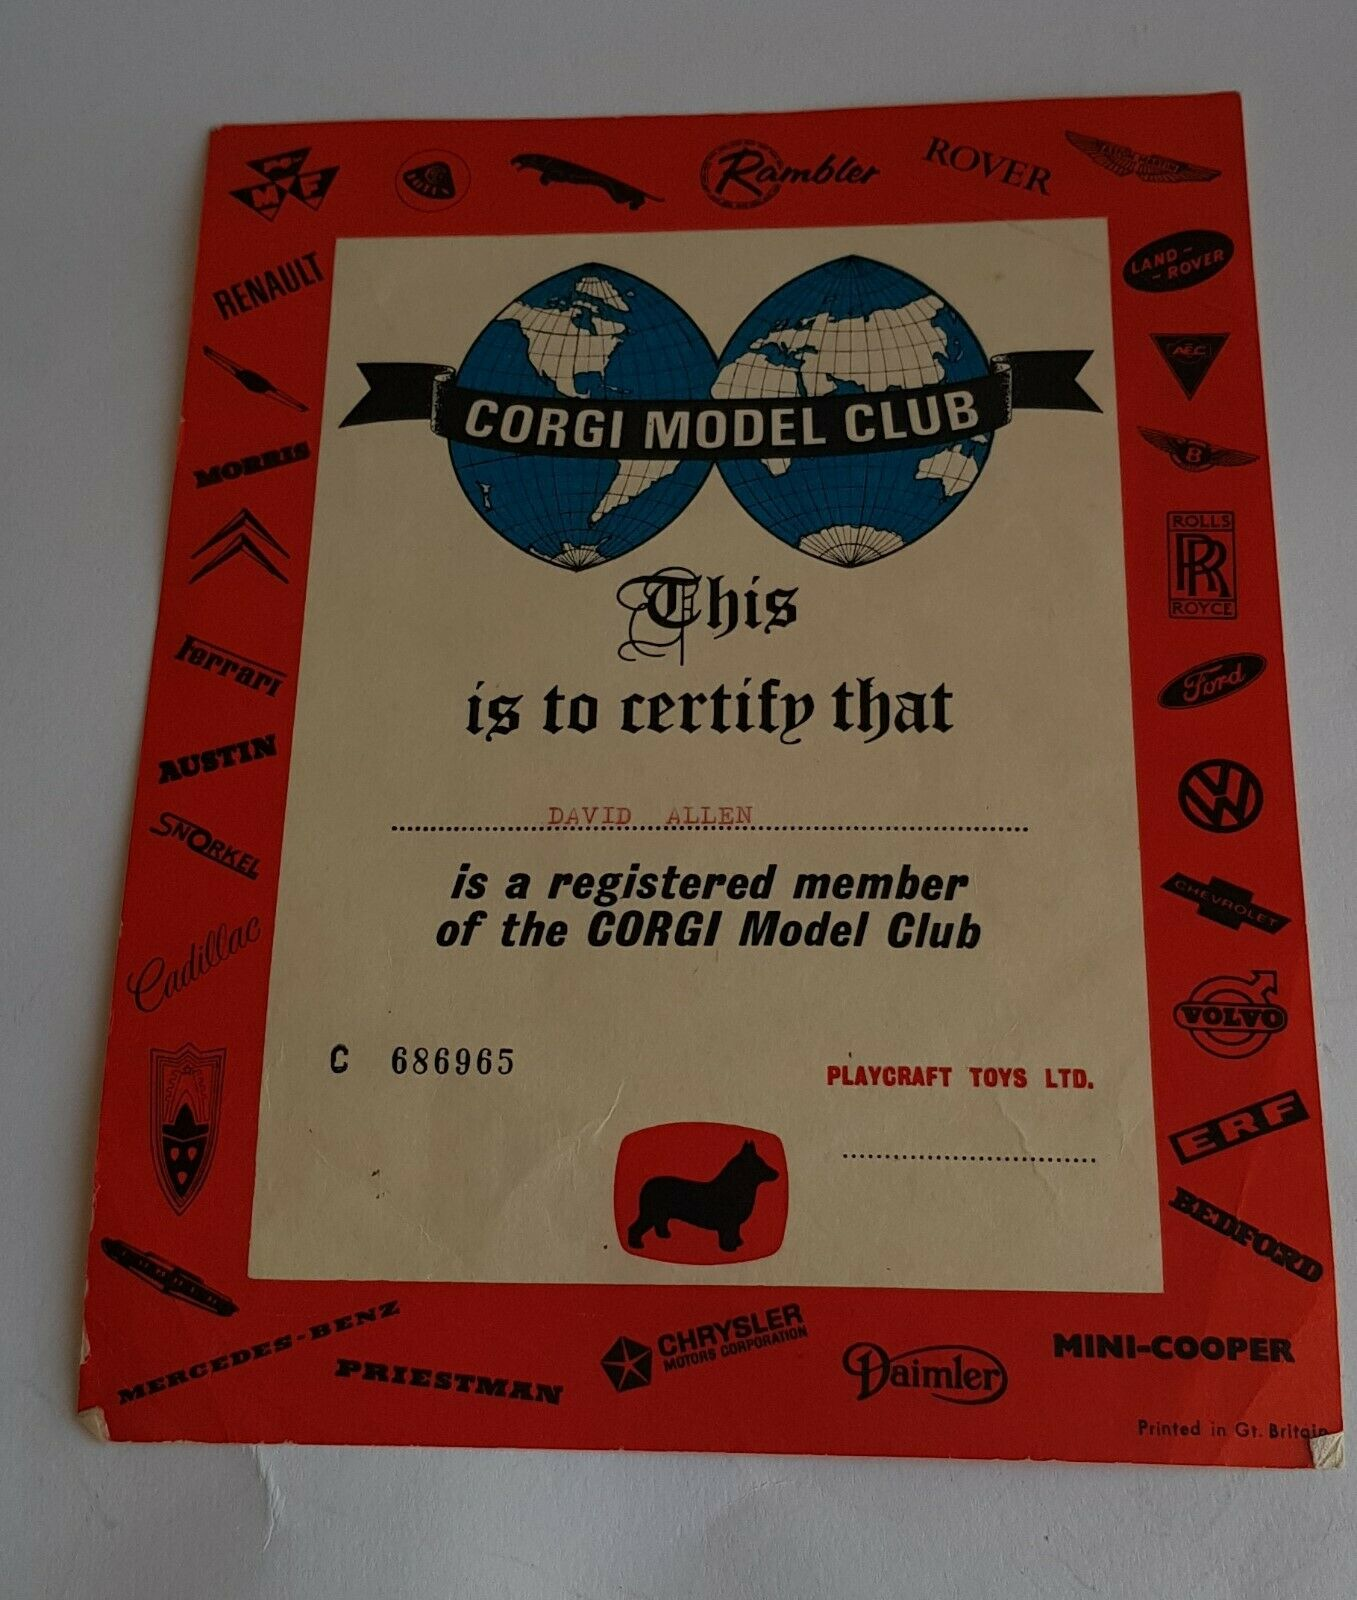 Original 1960's Corgi Toys Club Certificate, - Superb Very Near Mint Condition.